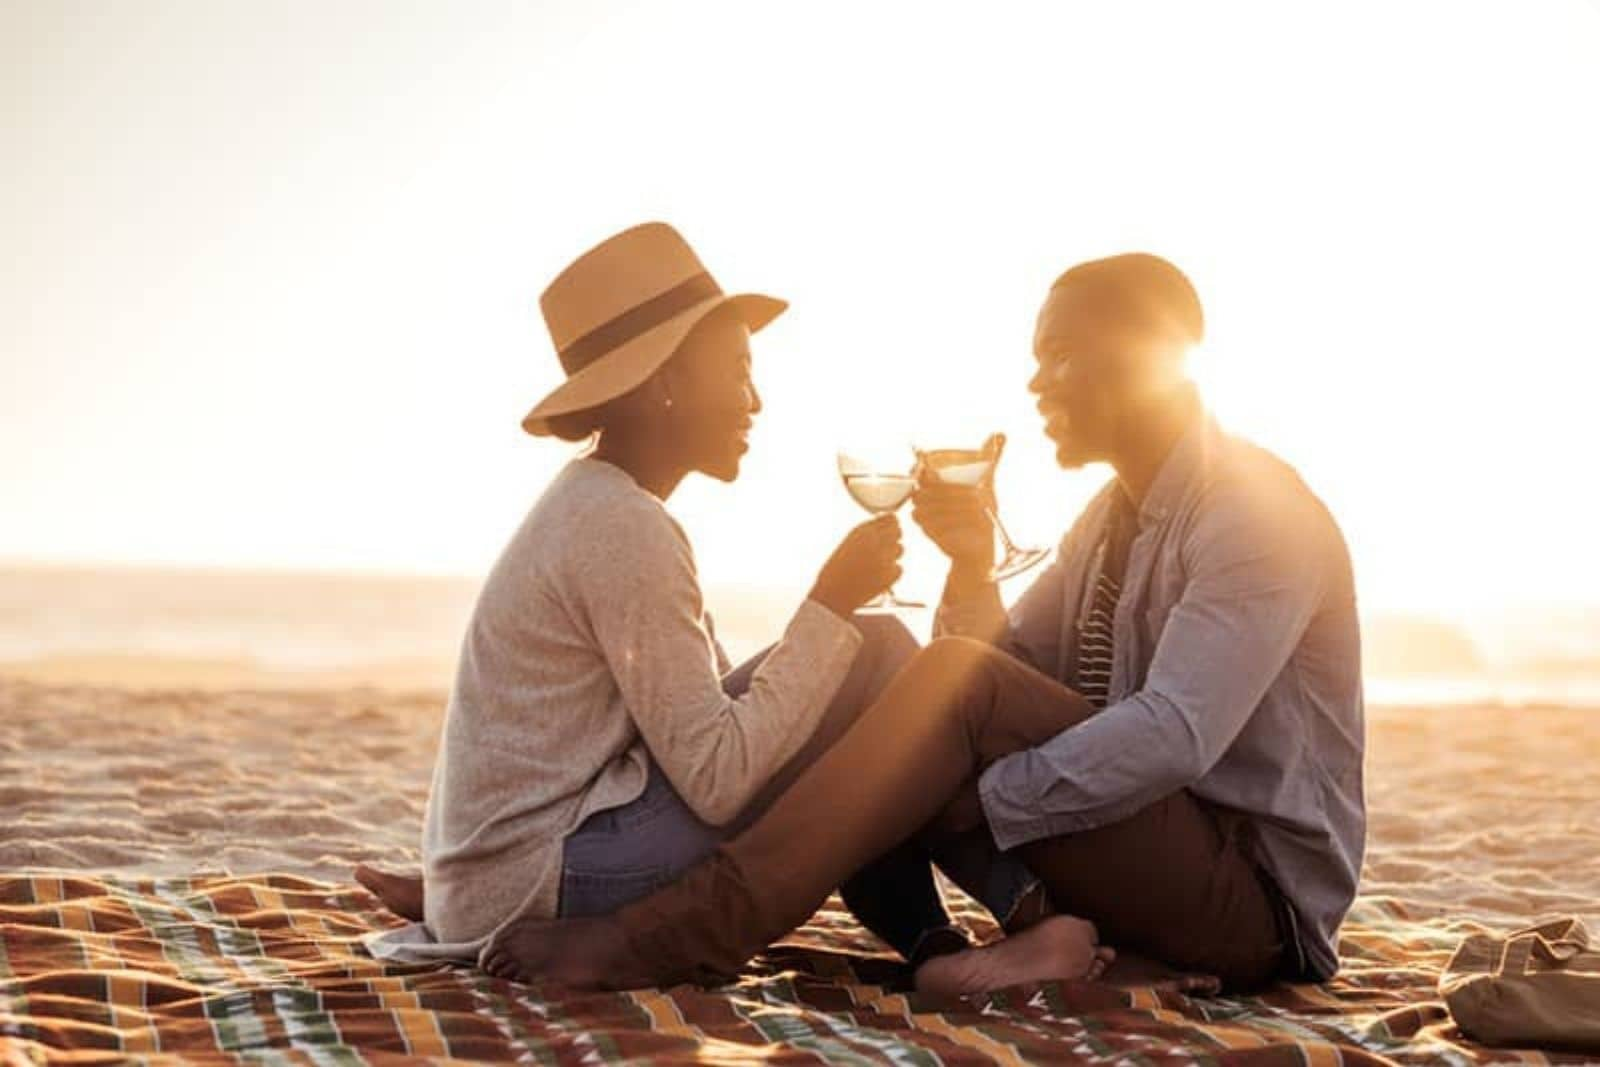 a man and a woman sit on the beach and drink